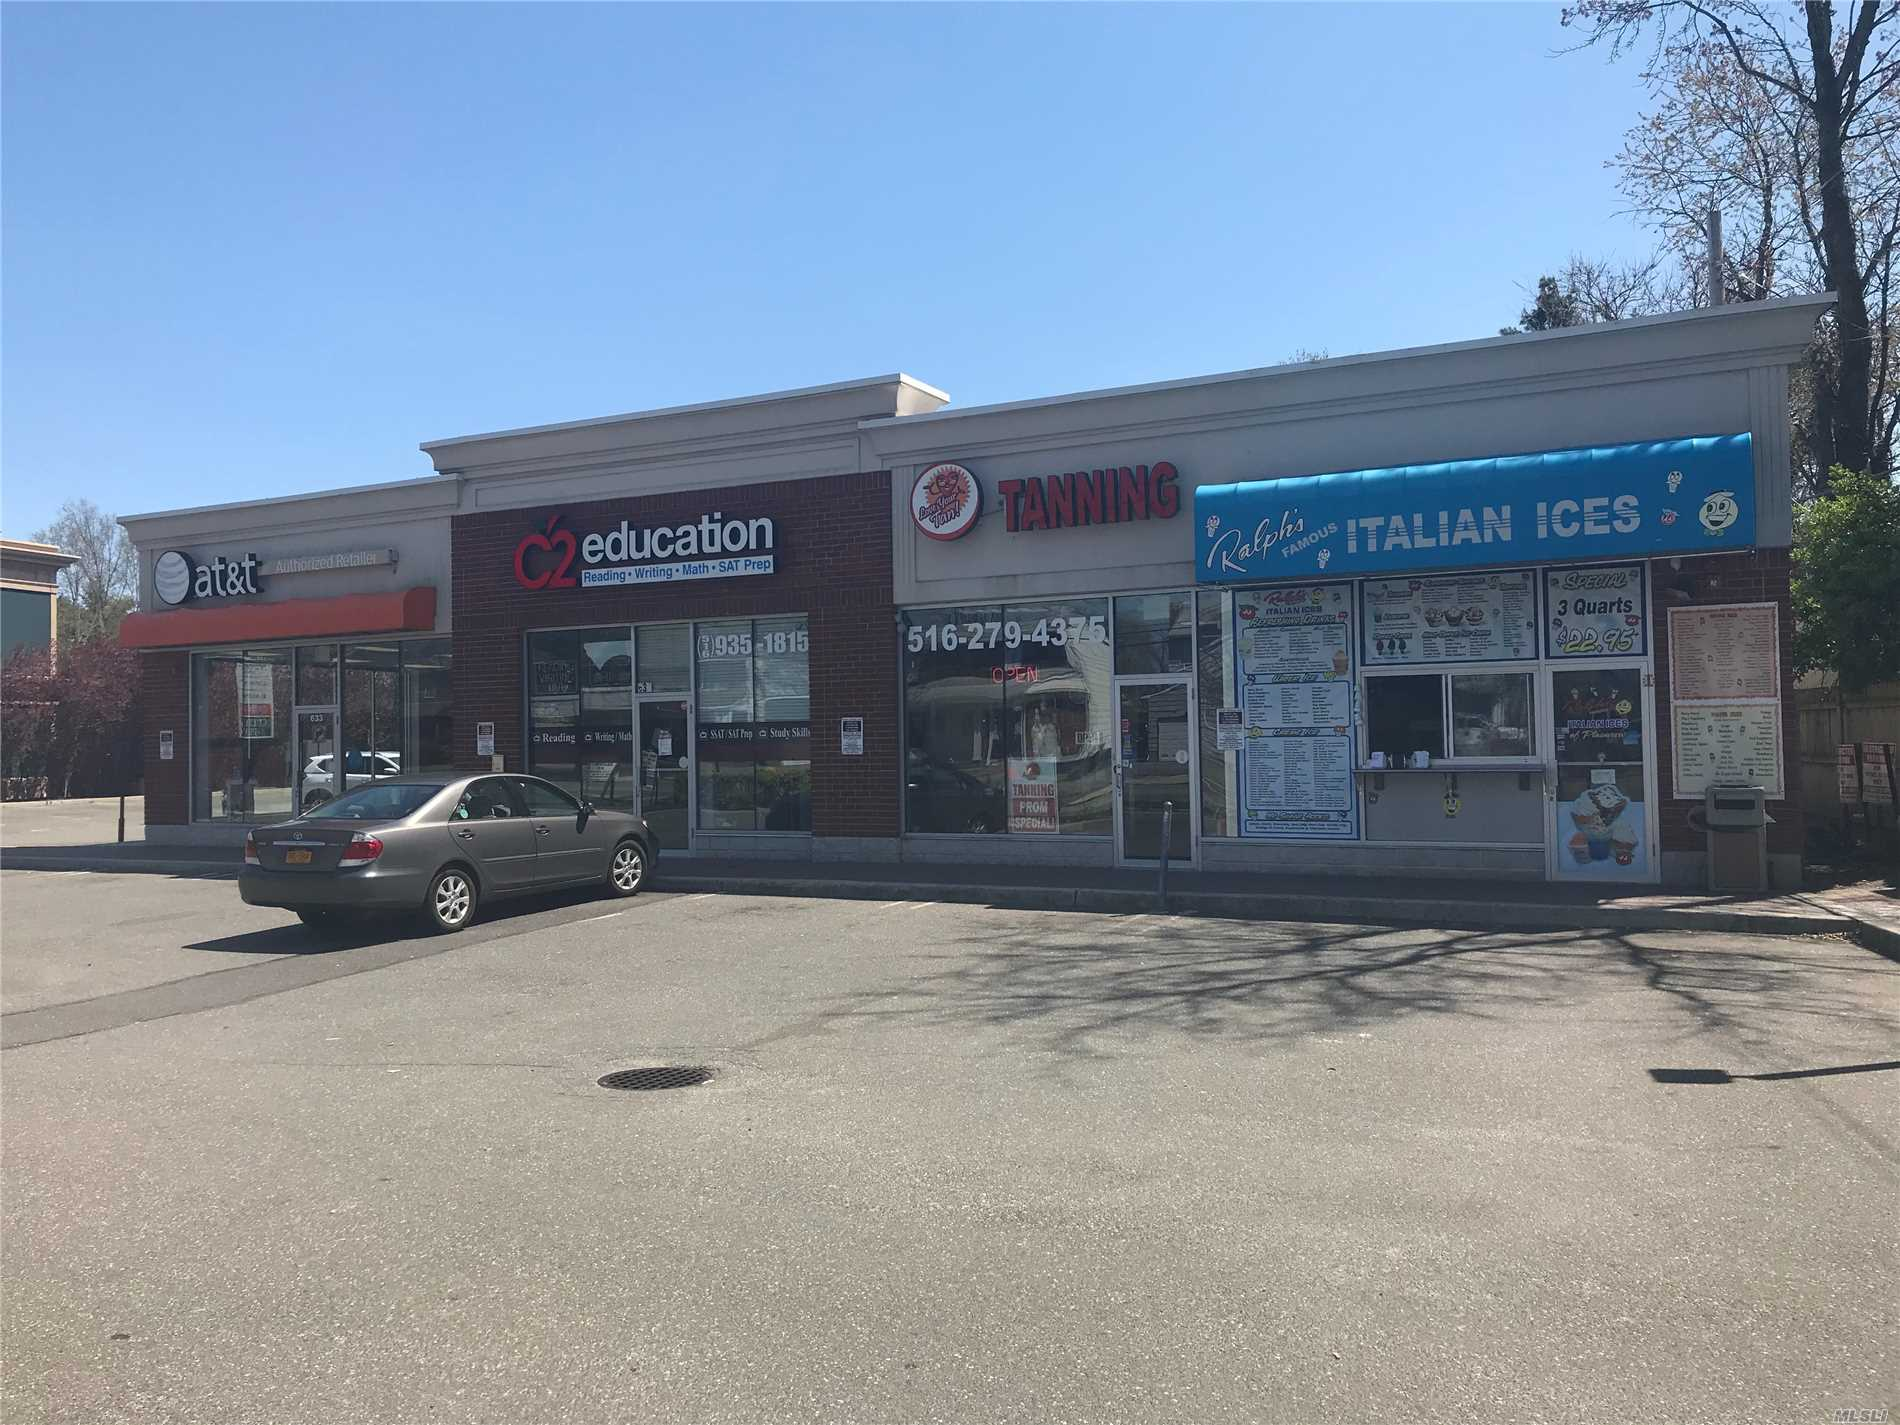 Great Location Directly On Old Country Road With High Visibility. Perfect For Medical, Dental, Insurance, Boutique, Takeout And Other Types Of Stores. Ample Parking.